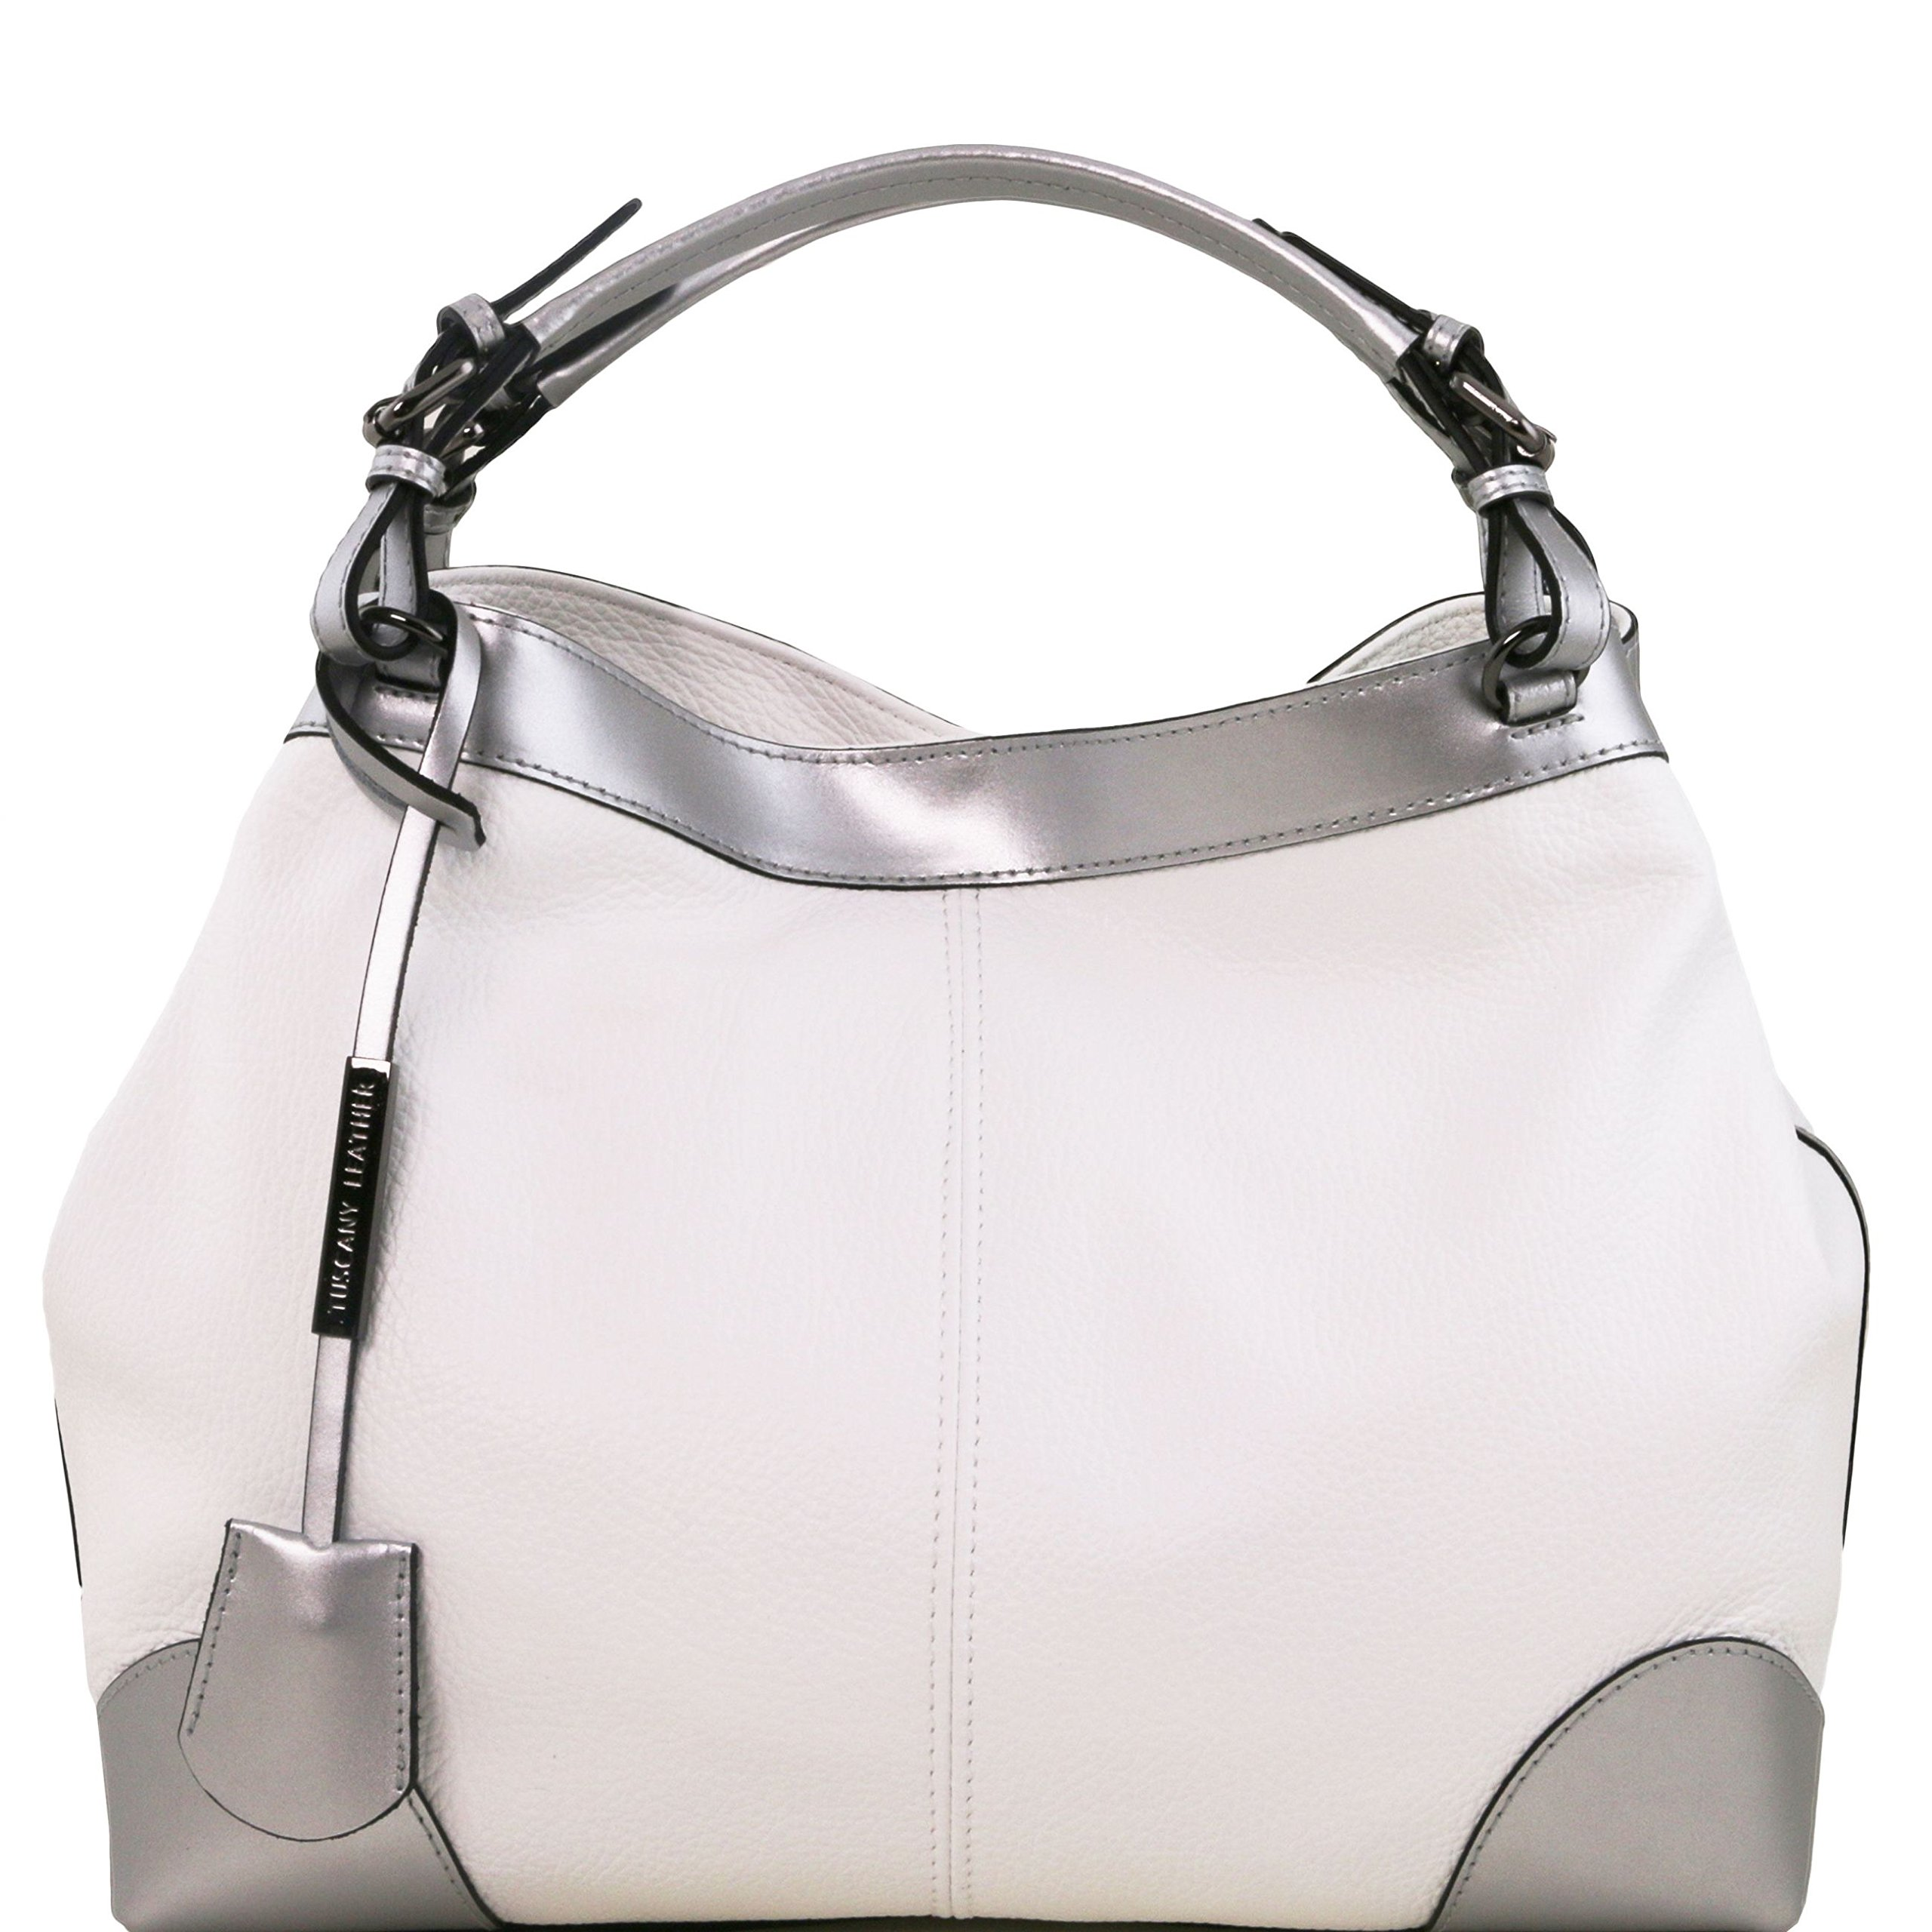 Tuscany Leather Ambrosia Soft leather bag with shoulder strap White